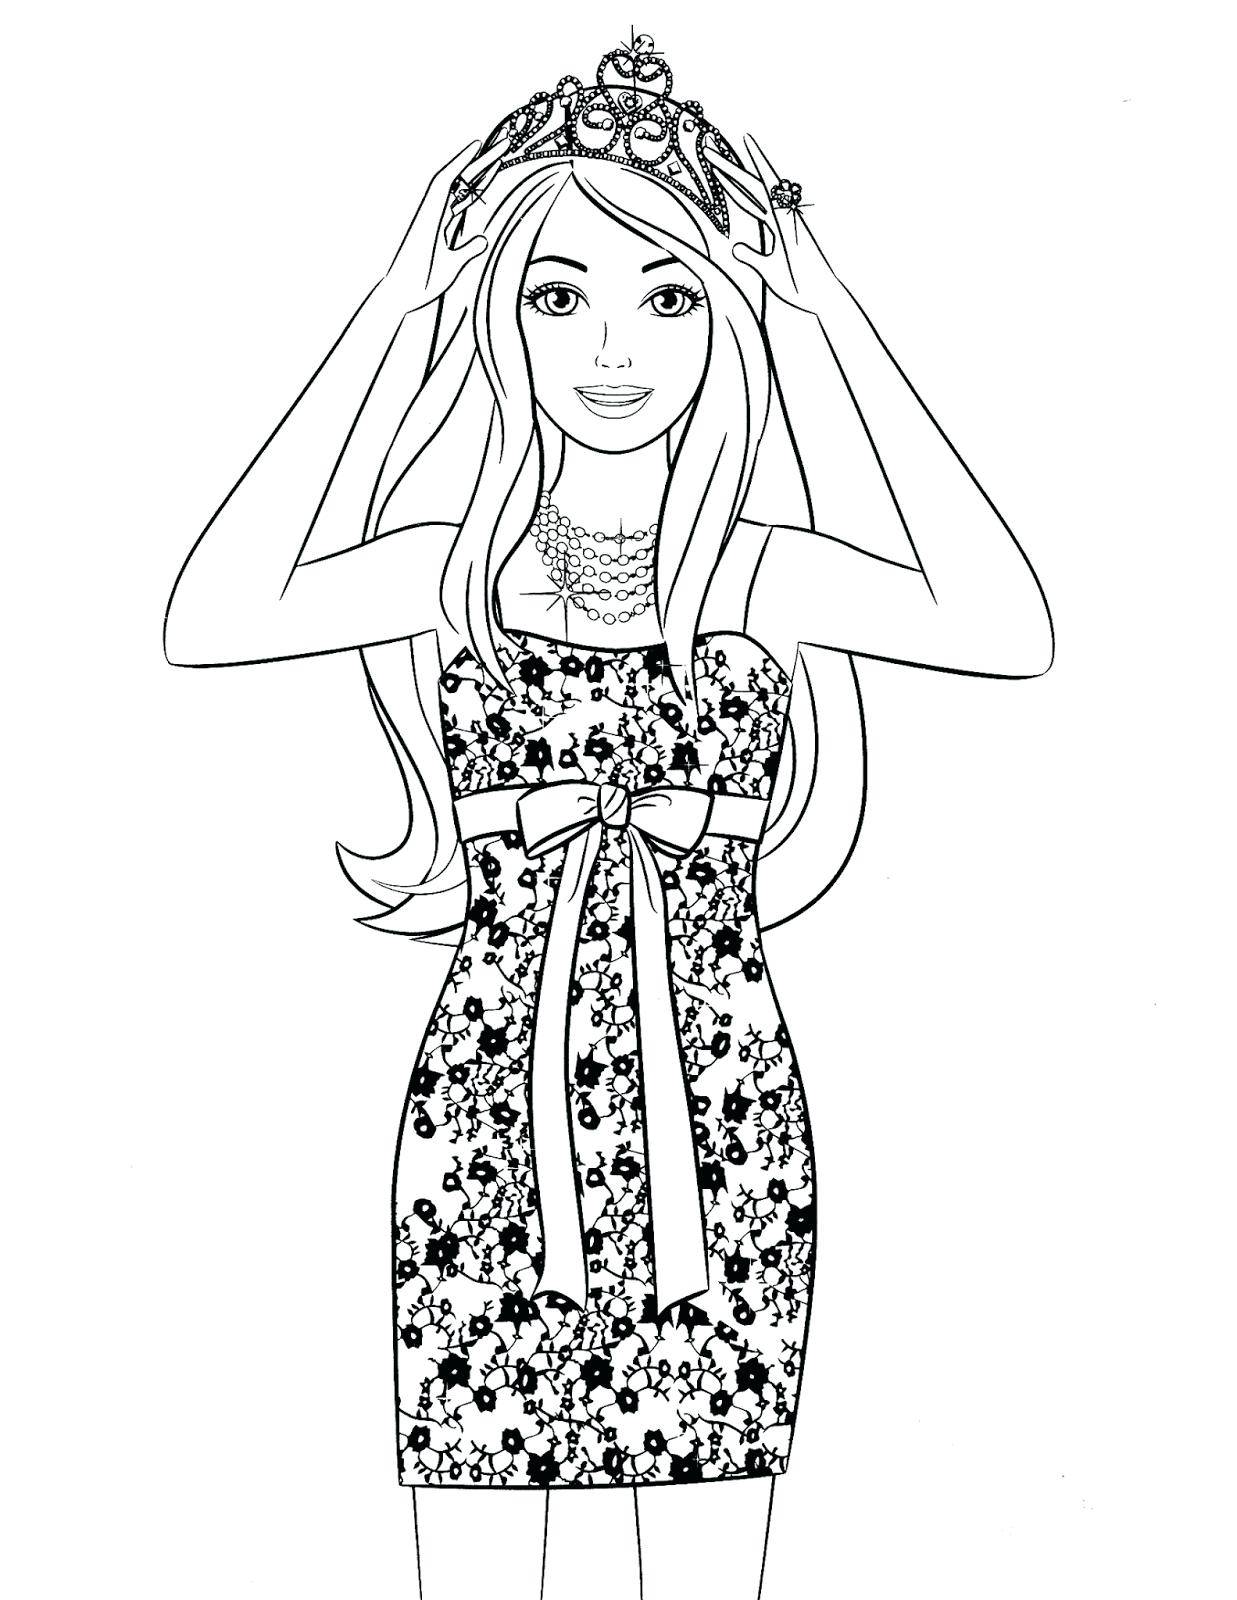 1237x1600 Hair Salon Coloring Pages Erf Coloring